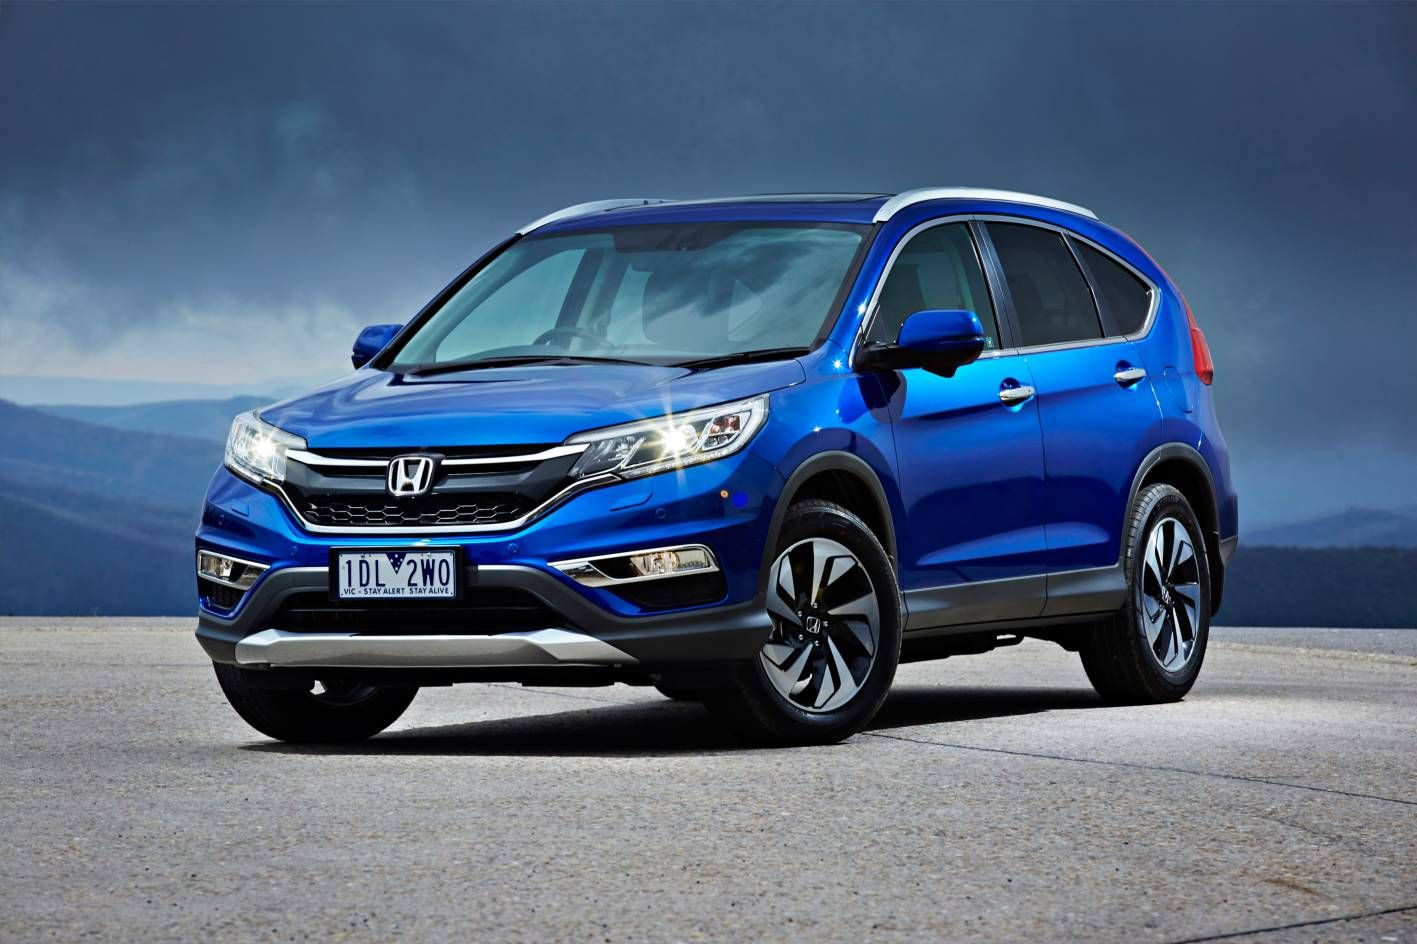 2015 Honda Cr V Series Ii On Sale In Australia From 27 490 With